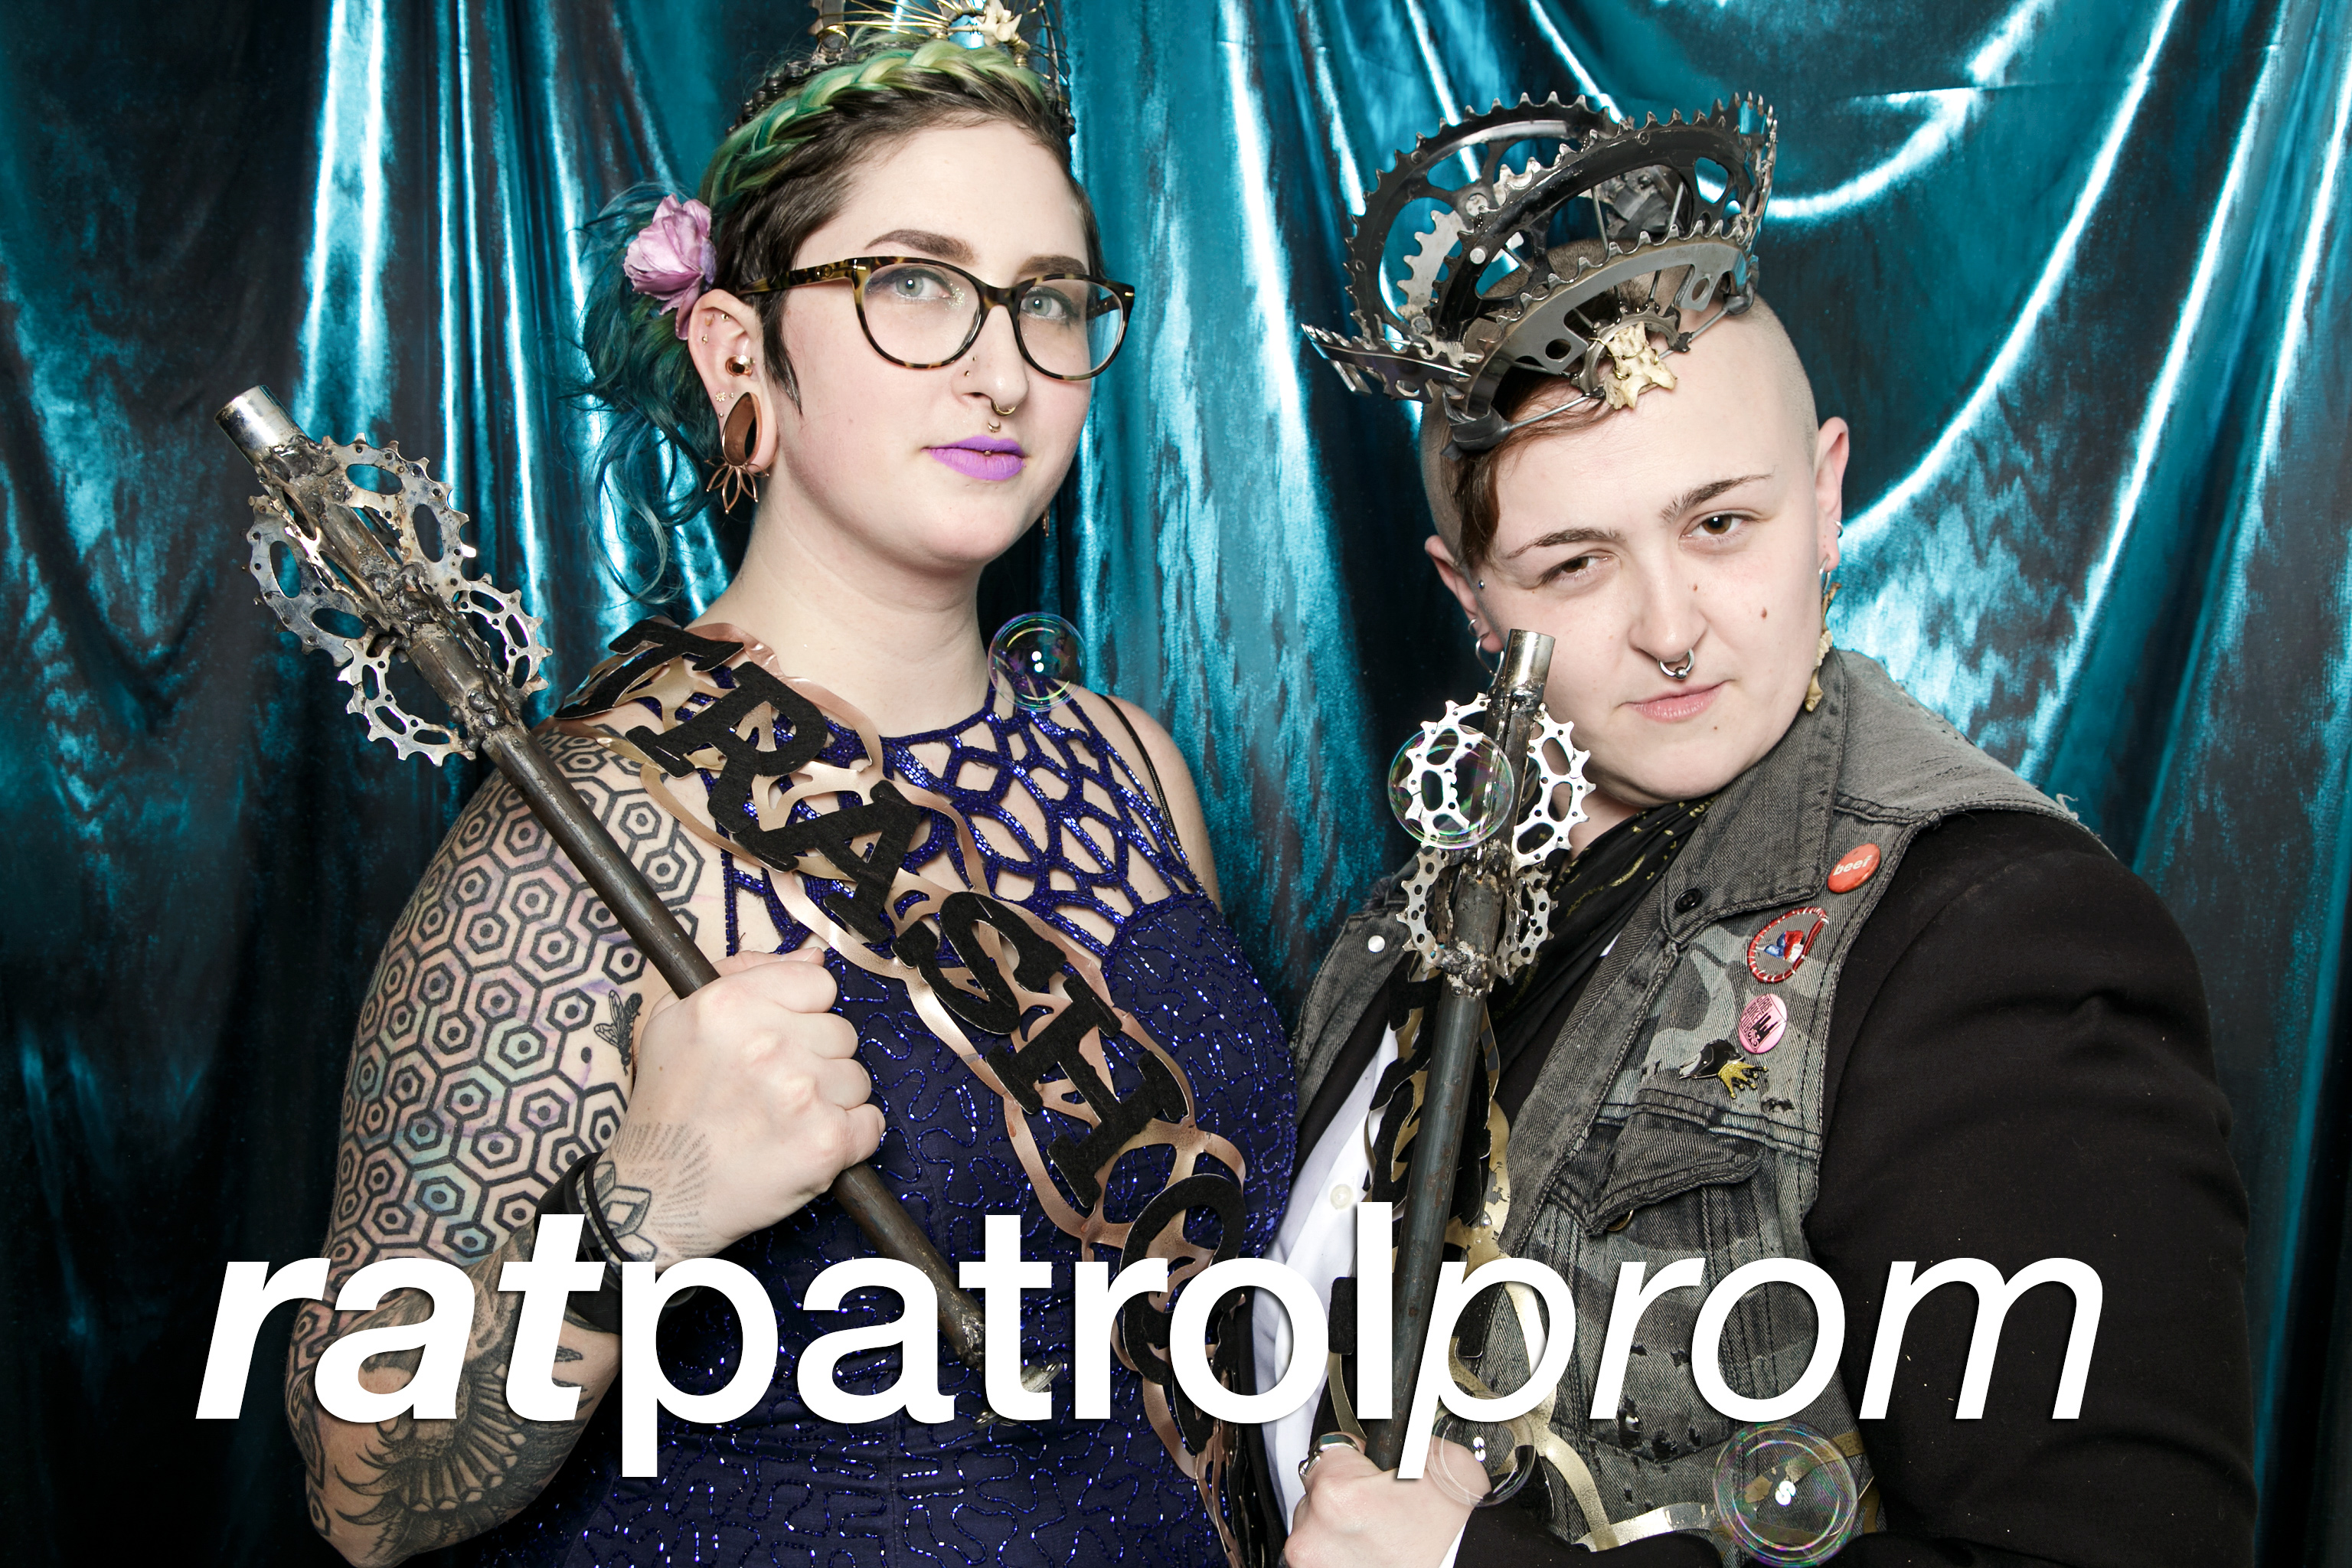 portrait booth photos from rat patrol prom at tcc gallery, march 2017